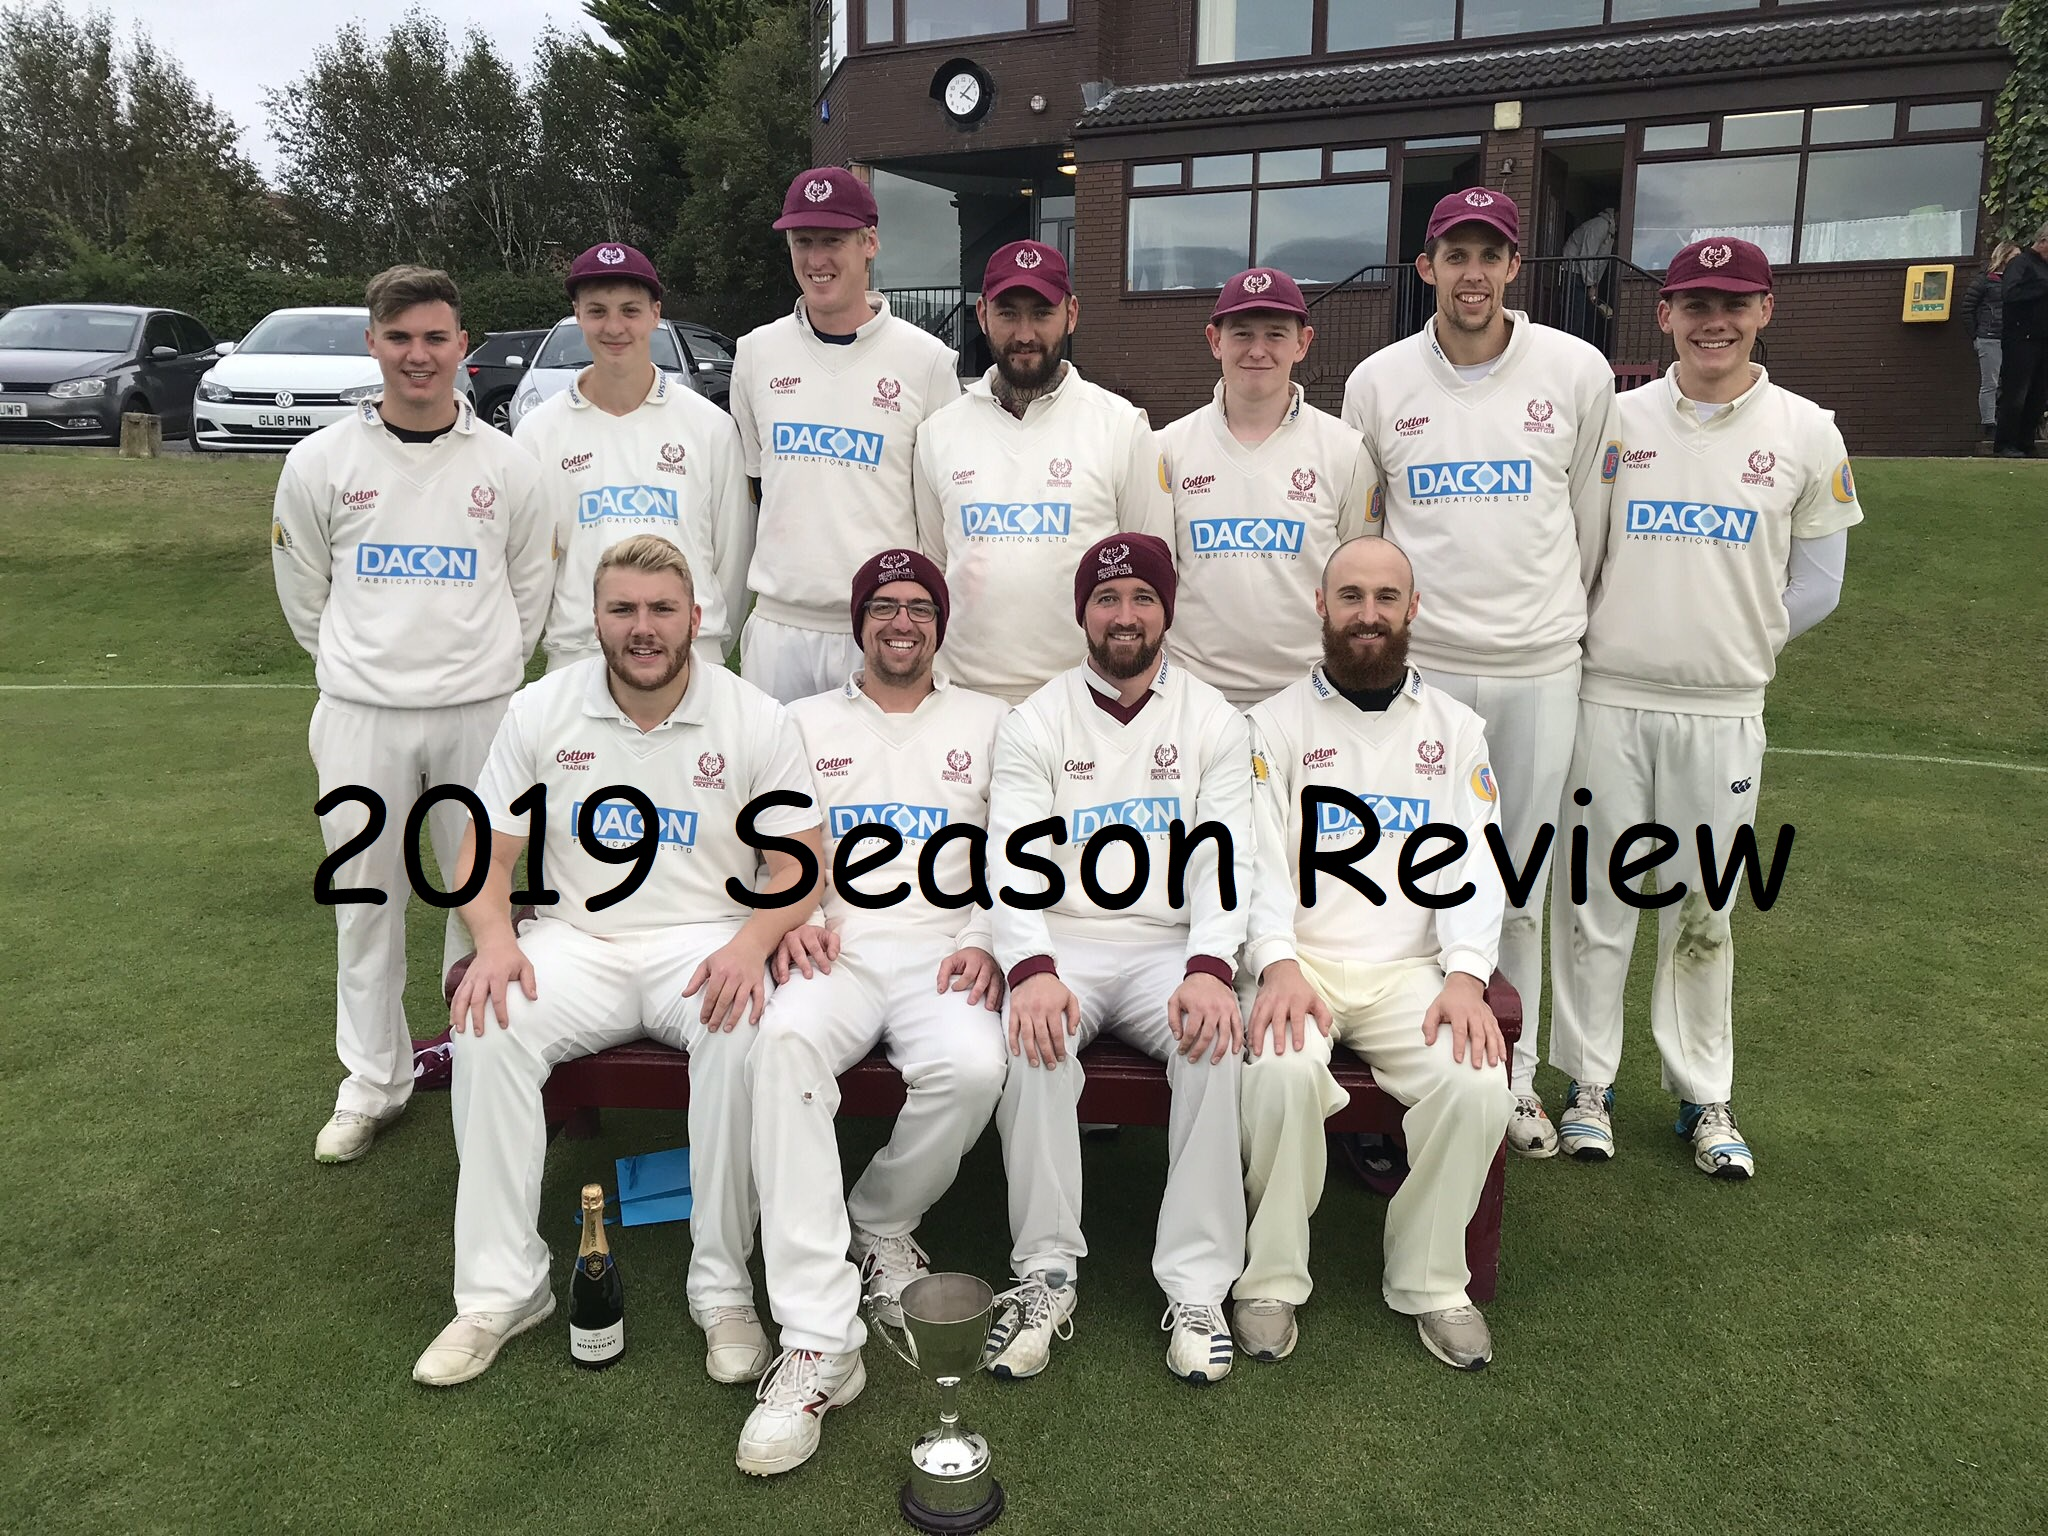 The 2019 Season Review now available